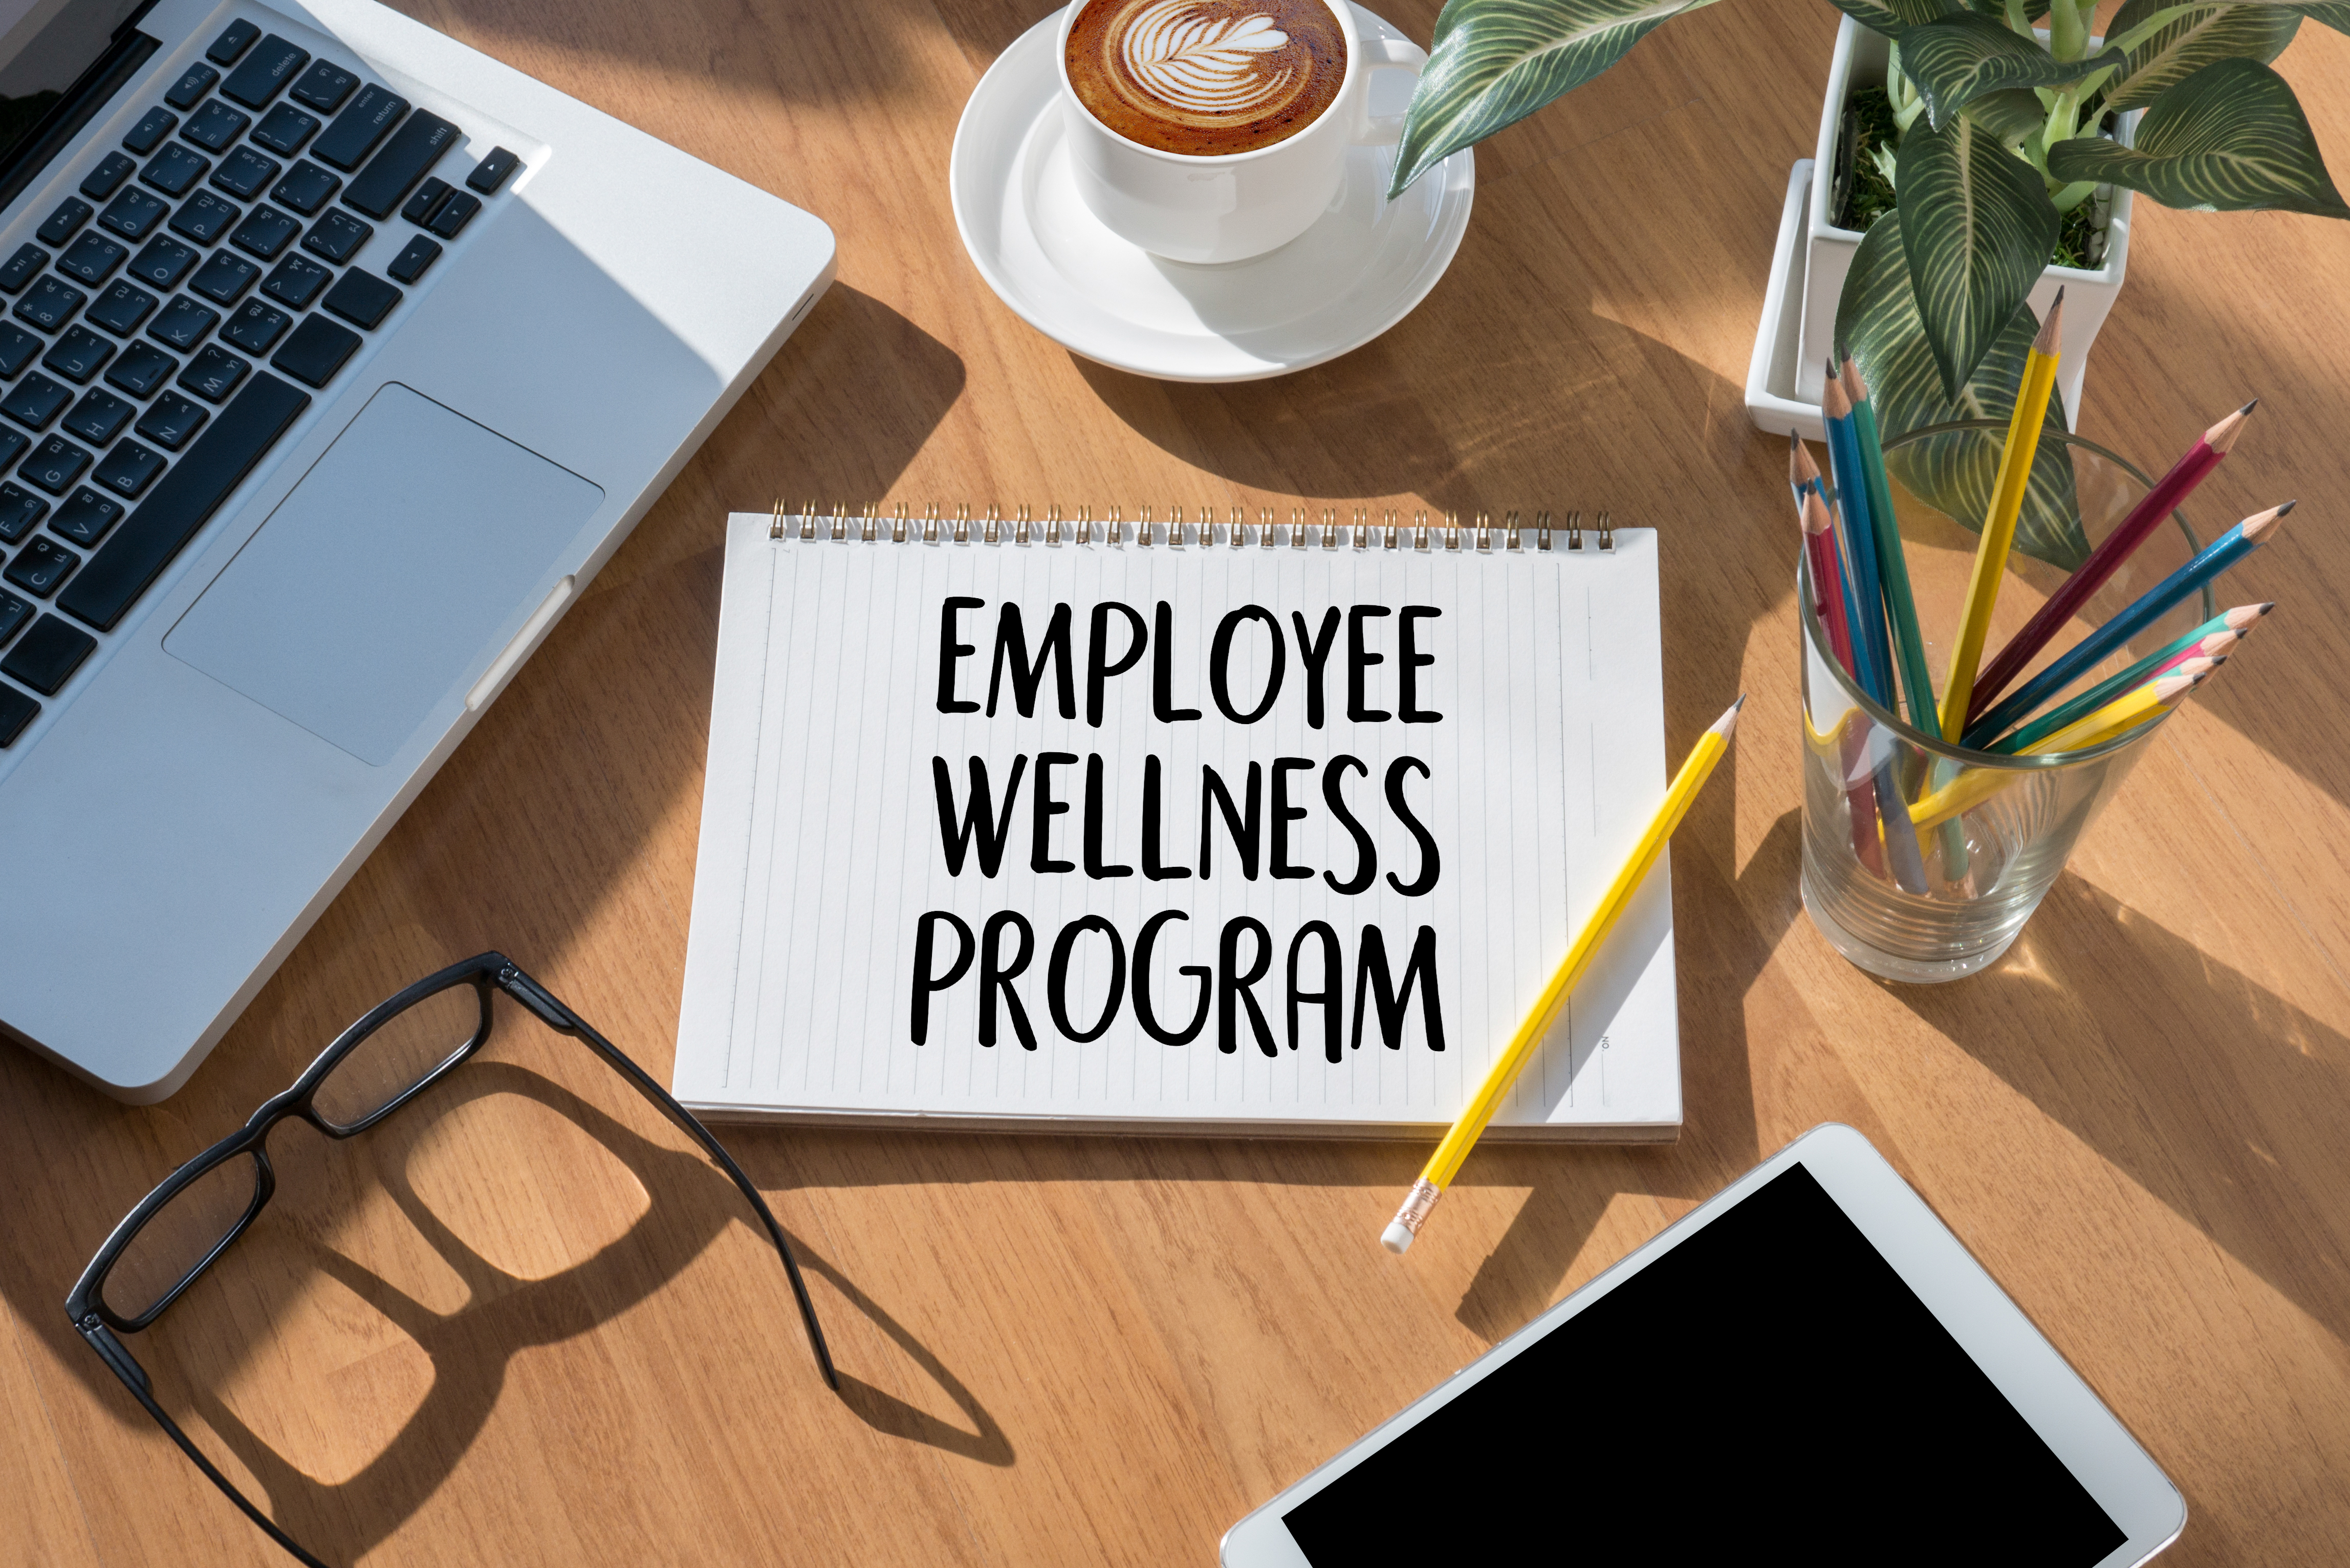 Most Workers Consider Health and Wellness Offerings When Choosing a Job